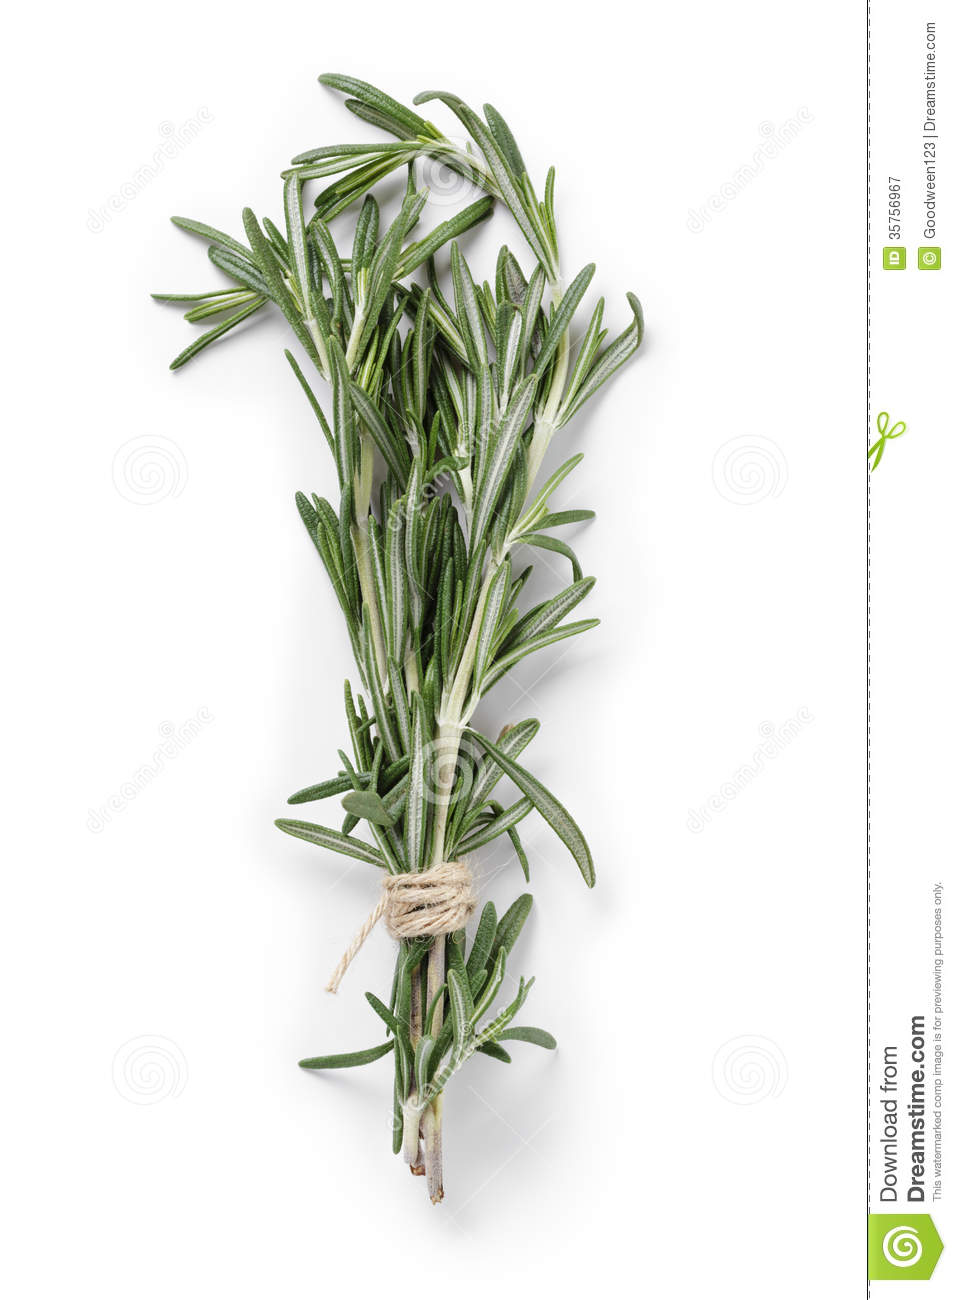 medium resolution of fresh rosemary bunch